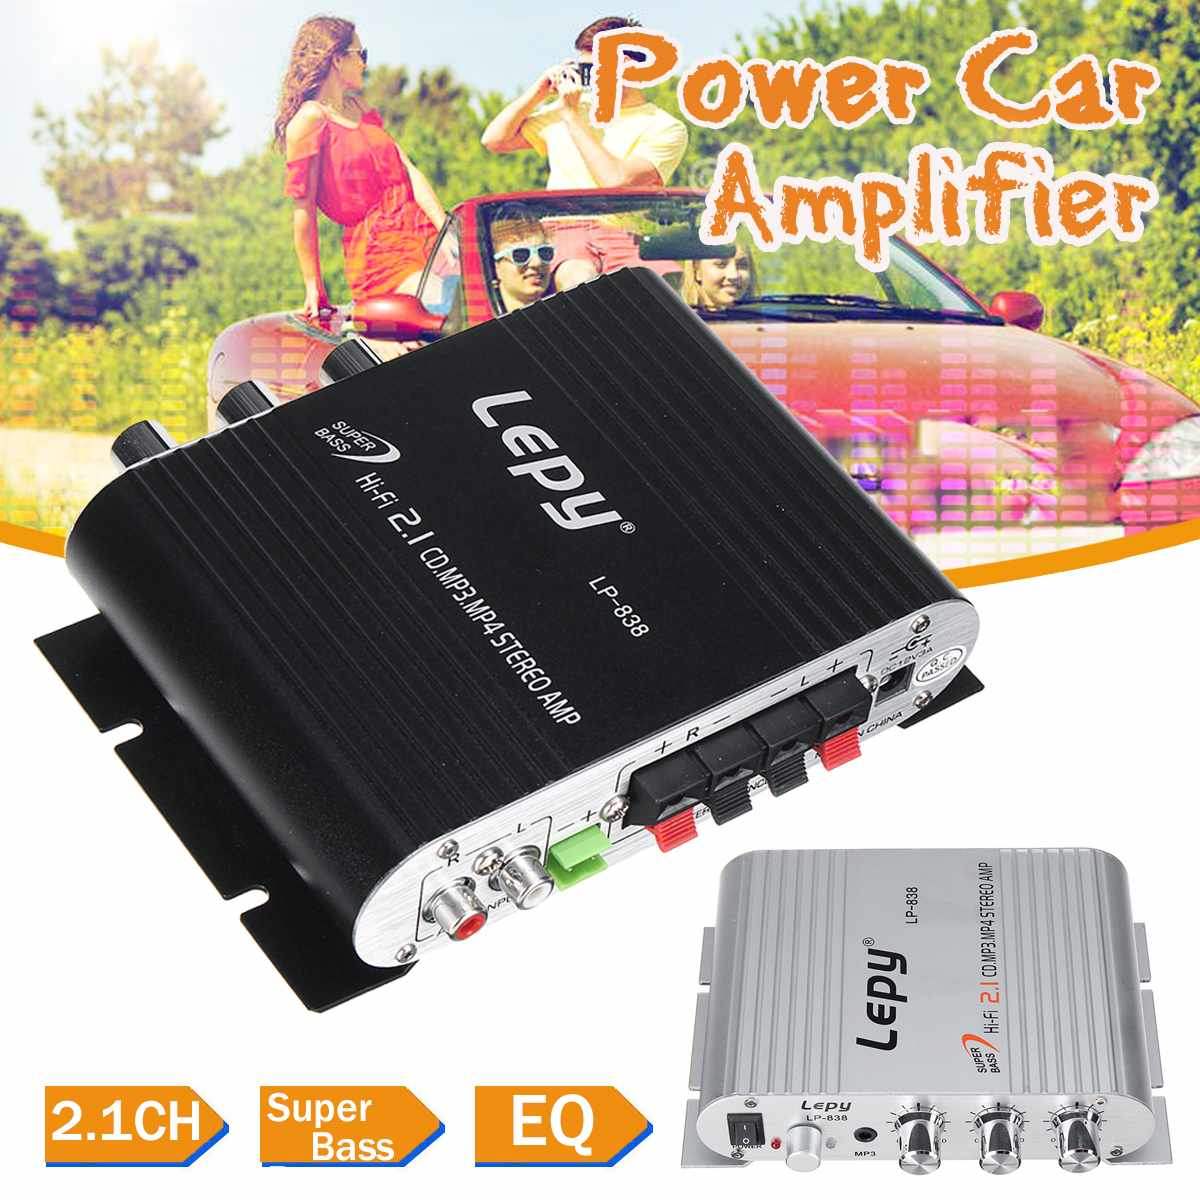 Lepy LP-838 12V Car Amplifier Hi-Fi 2.1 CH Channel MP3 MP4 DVD Phone Radio Audio Stereo Bass Speaker ooster Player